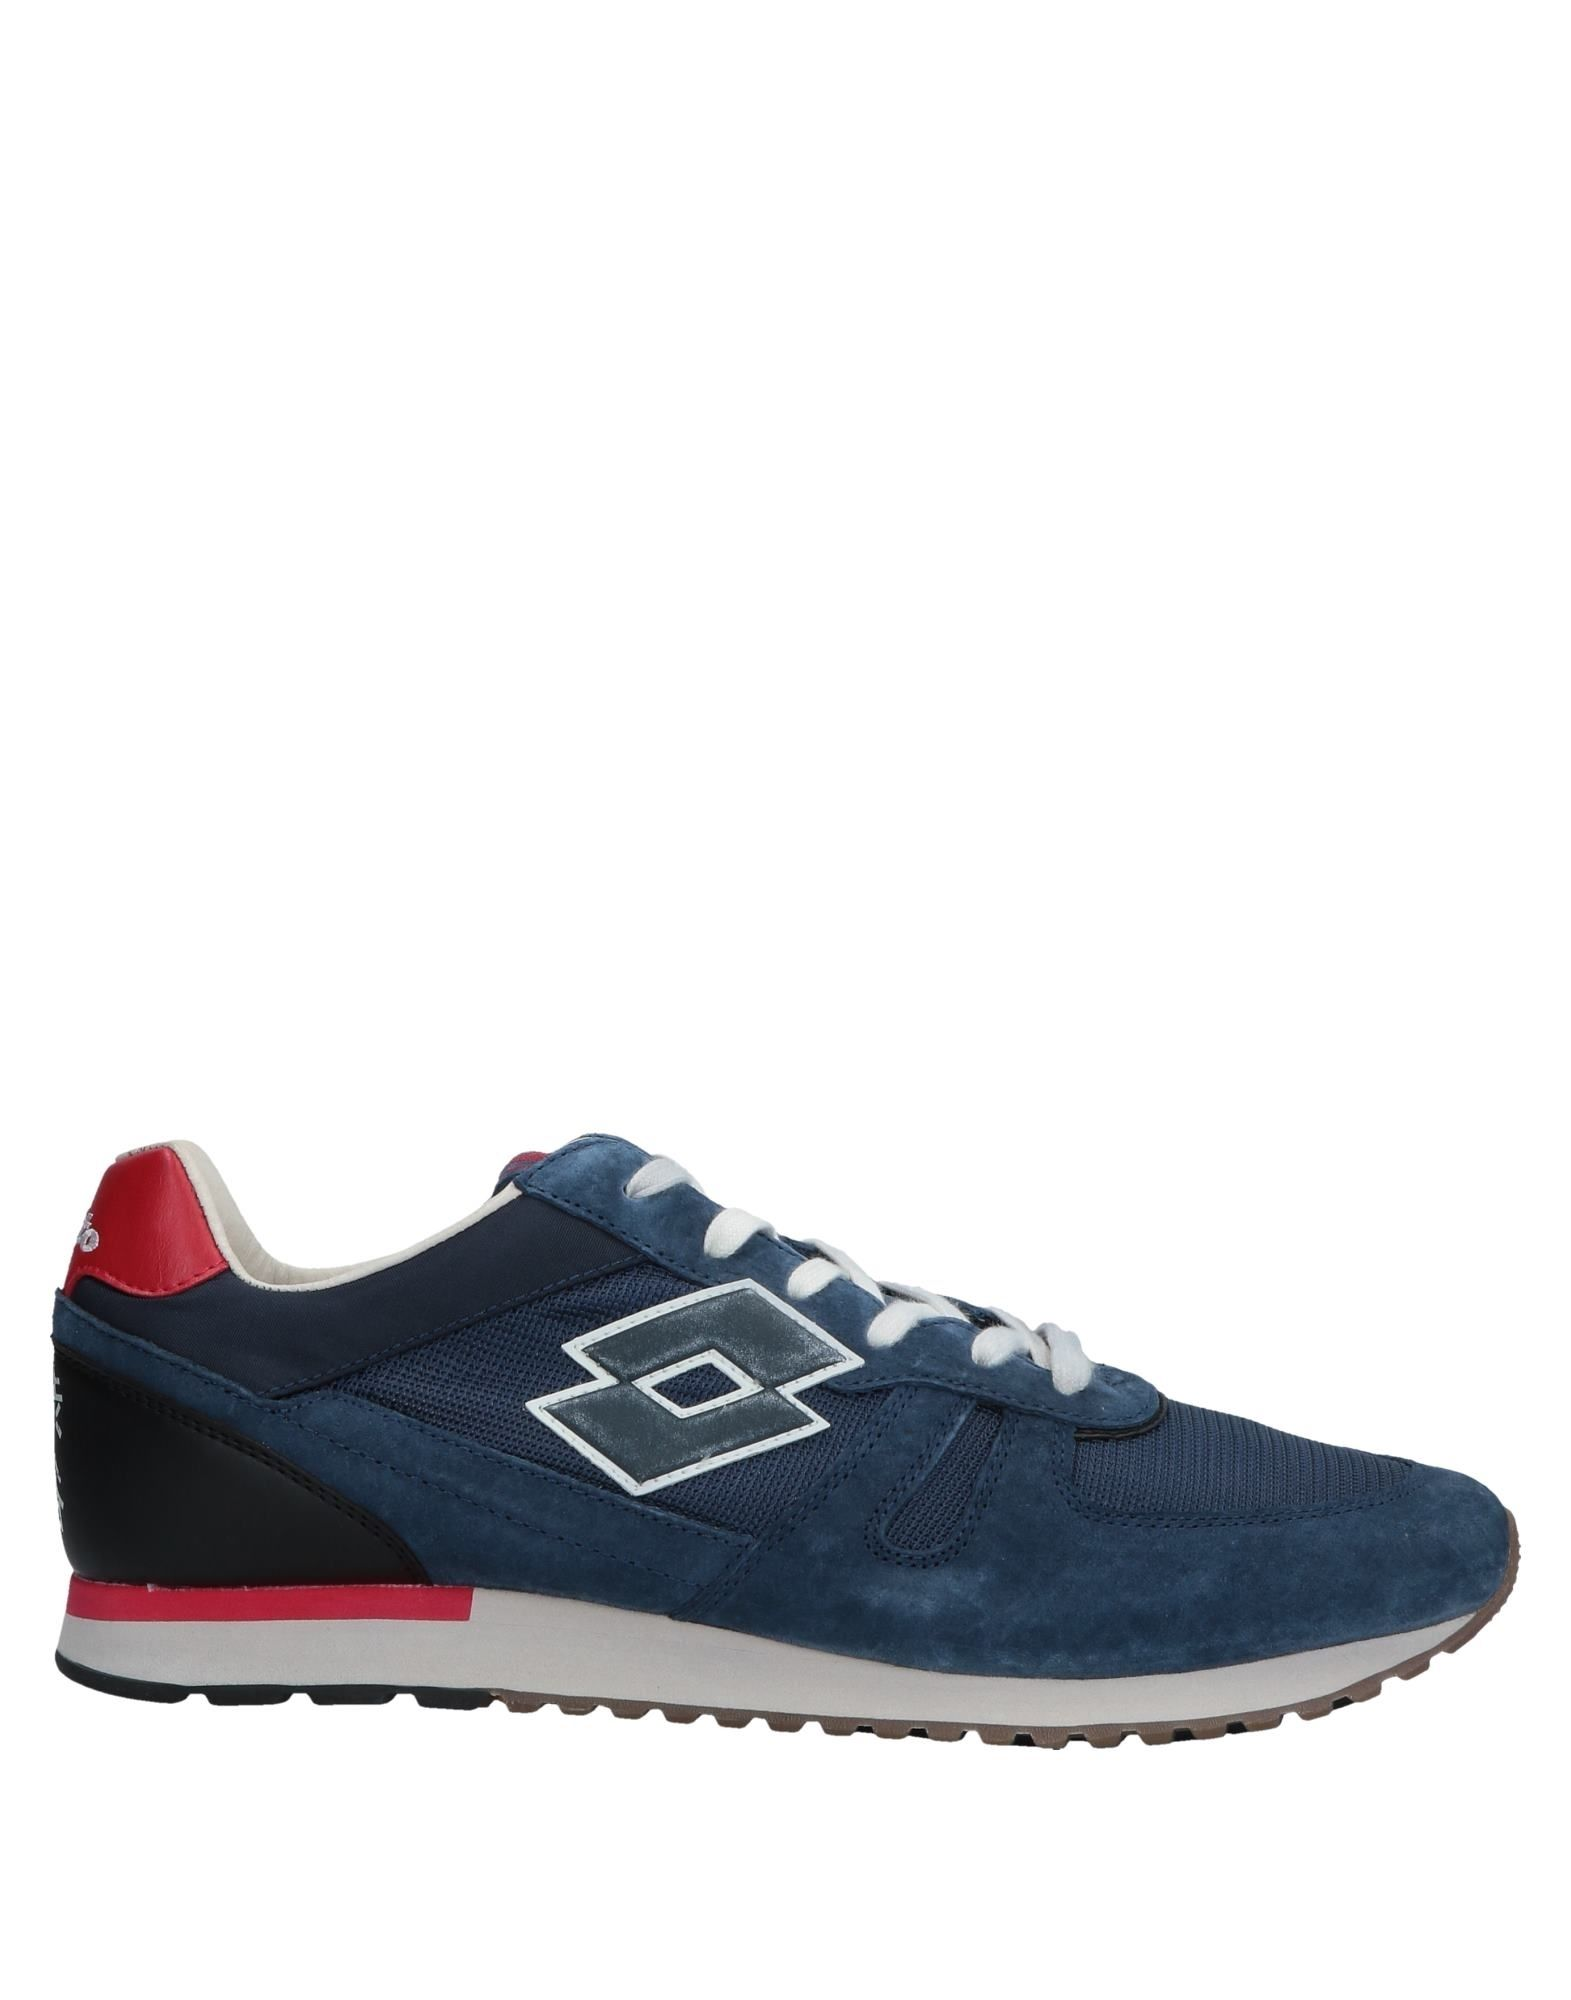 Lotto Lotto Lotto Leggenda Sneakers - Men Lotto Leggenda Sneakers online on  Australia - 11570611QU 42b98e